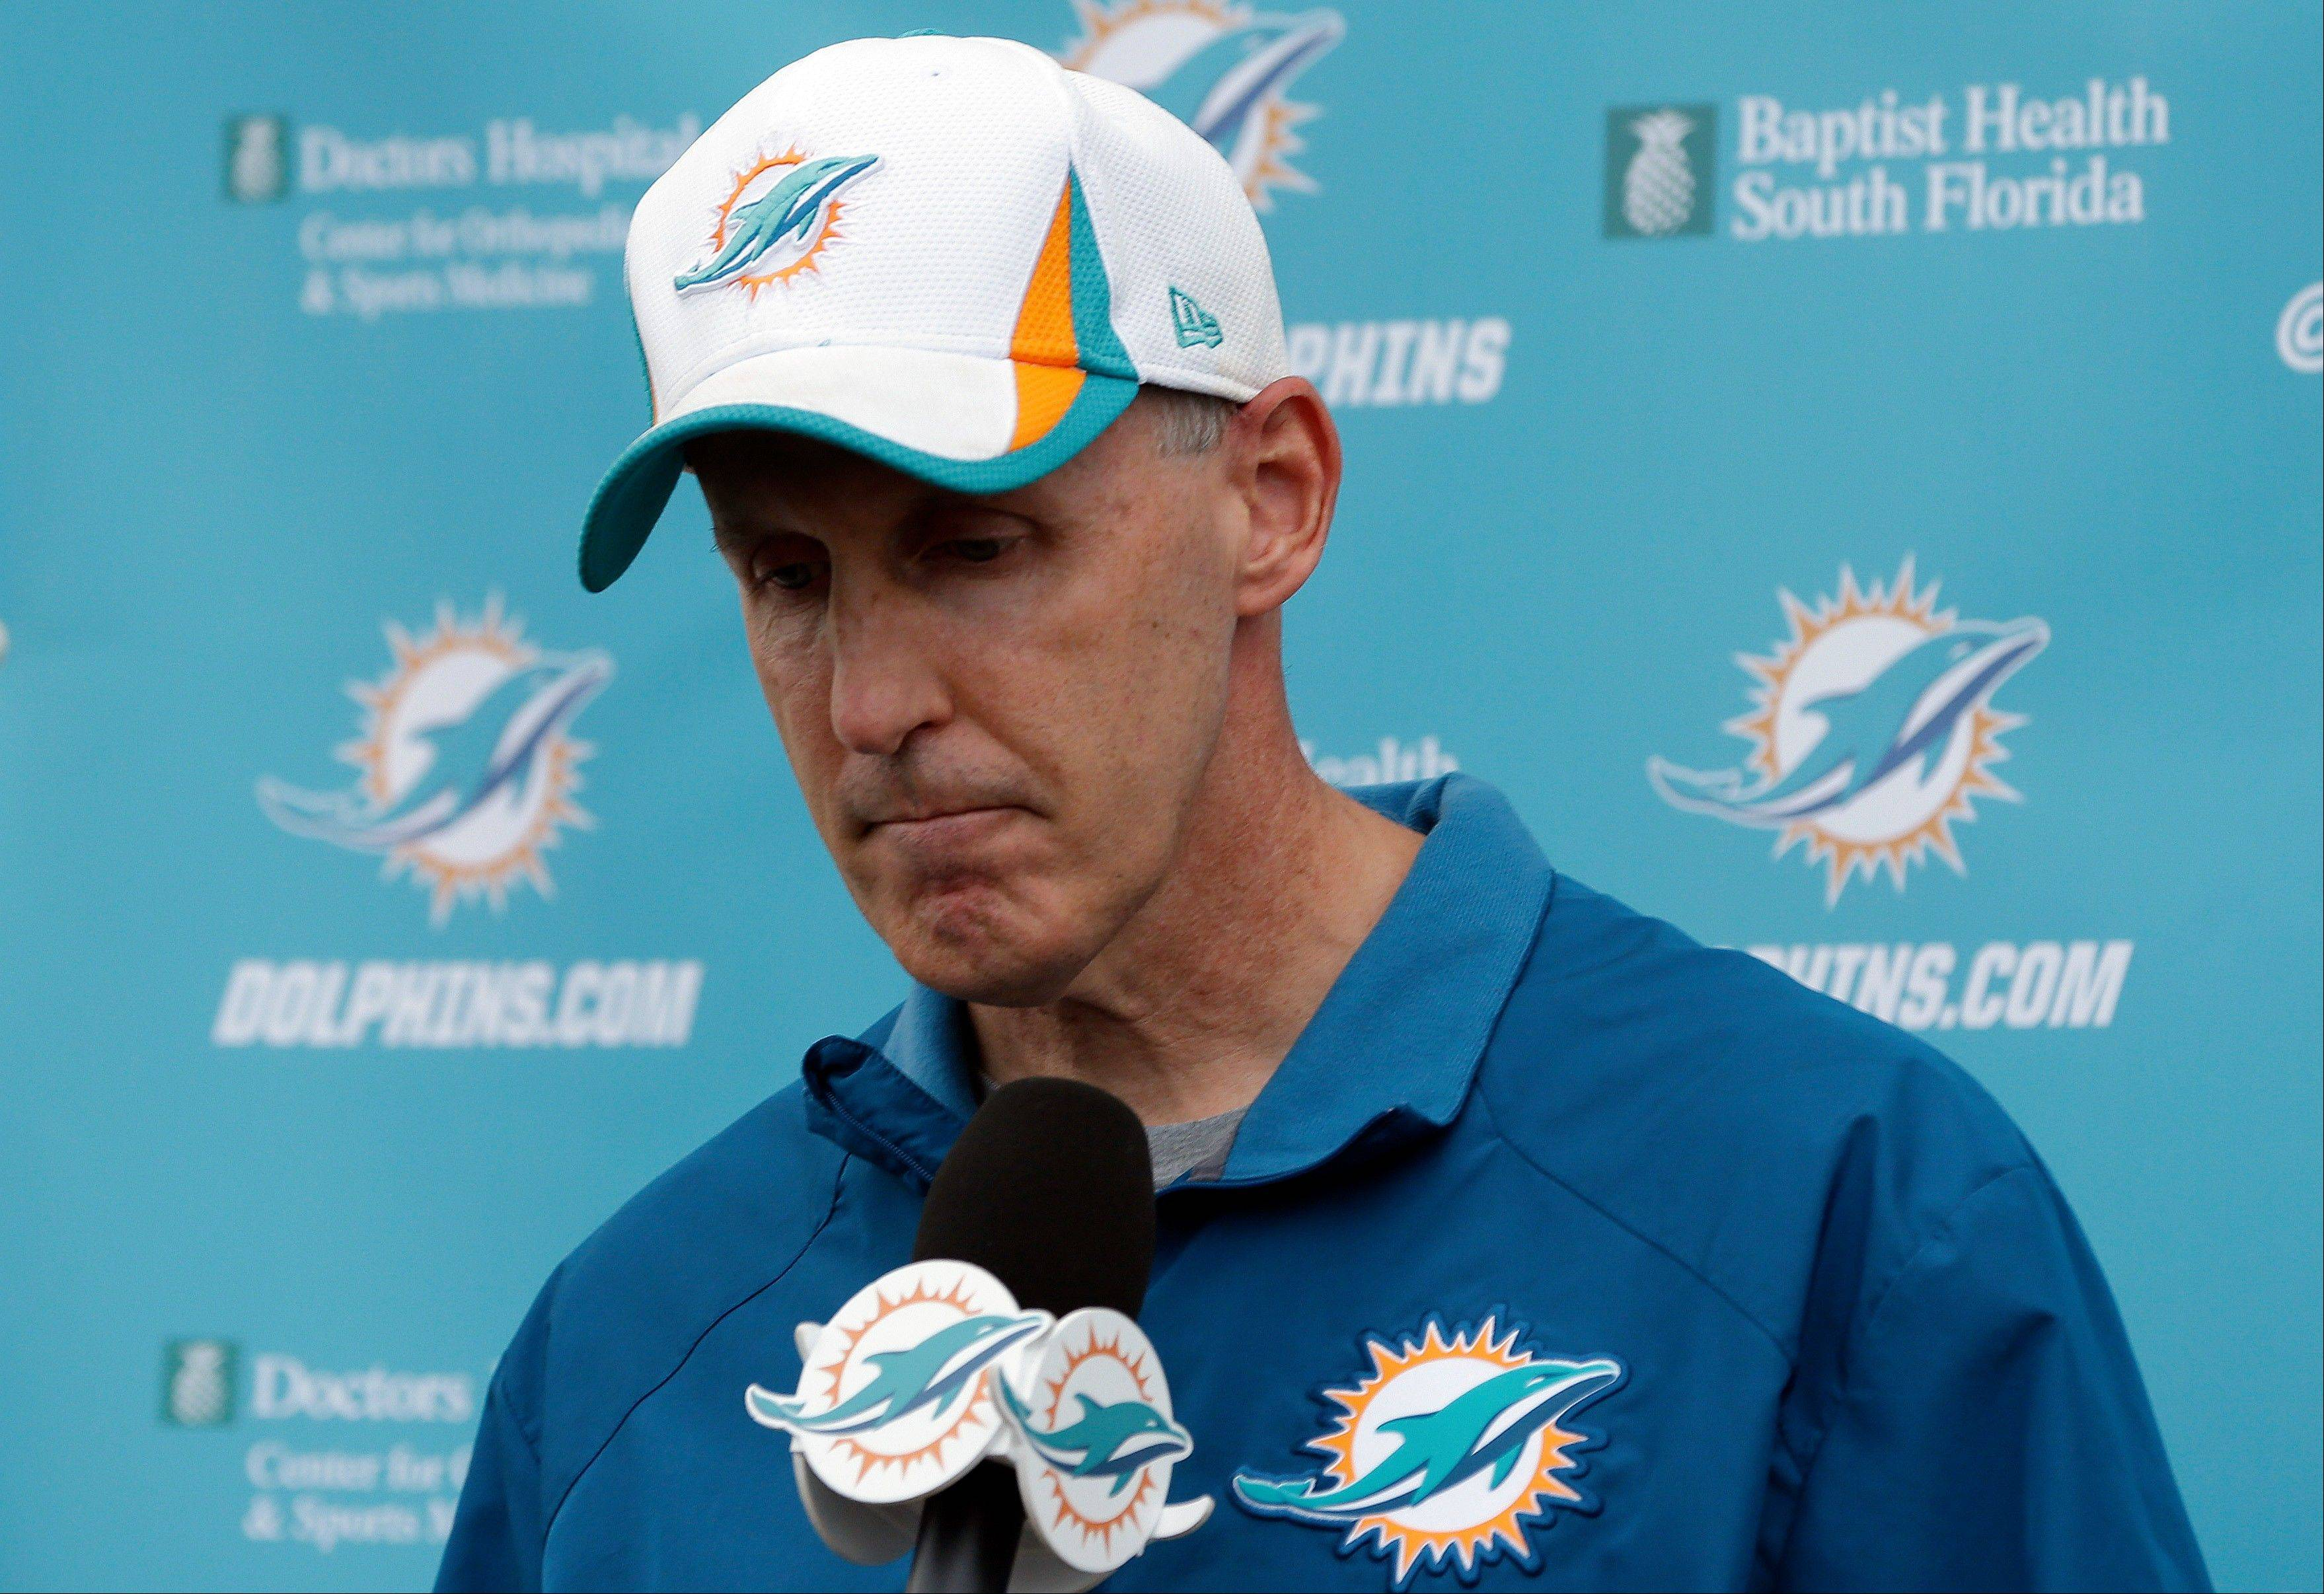 Miami Dolphins head coach Joe Philbin looks down during a media availability following an NFL football practice, Monday, Nov. 4, 2013, in Davie, Fla. The Dolphins suspended guard Richie Incognito Sunday for misconduct related to the treatment of teammate Jonathan Martin, who abruptly left the team a week ago to receive help for emotional issues.